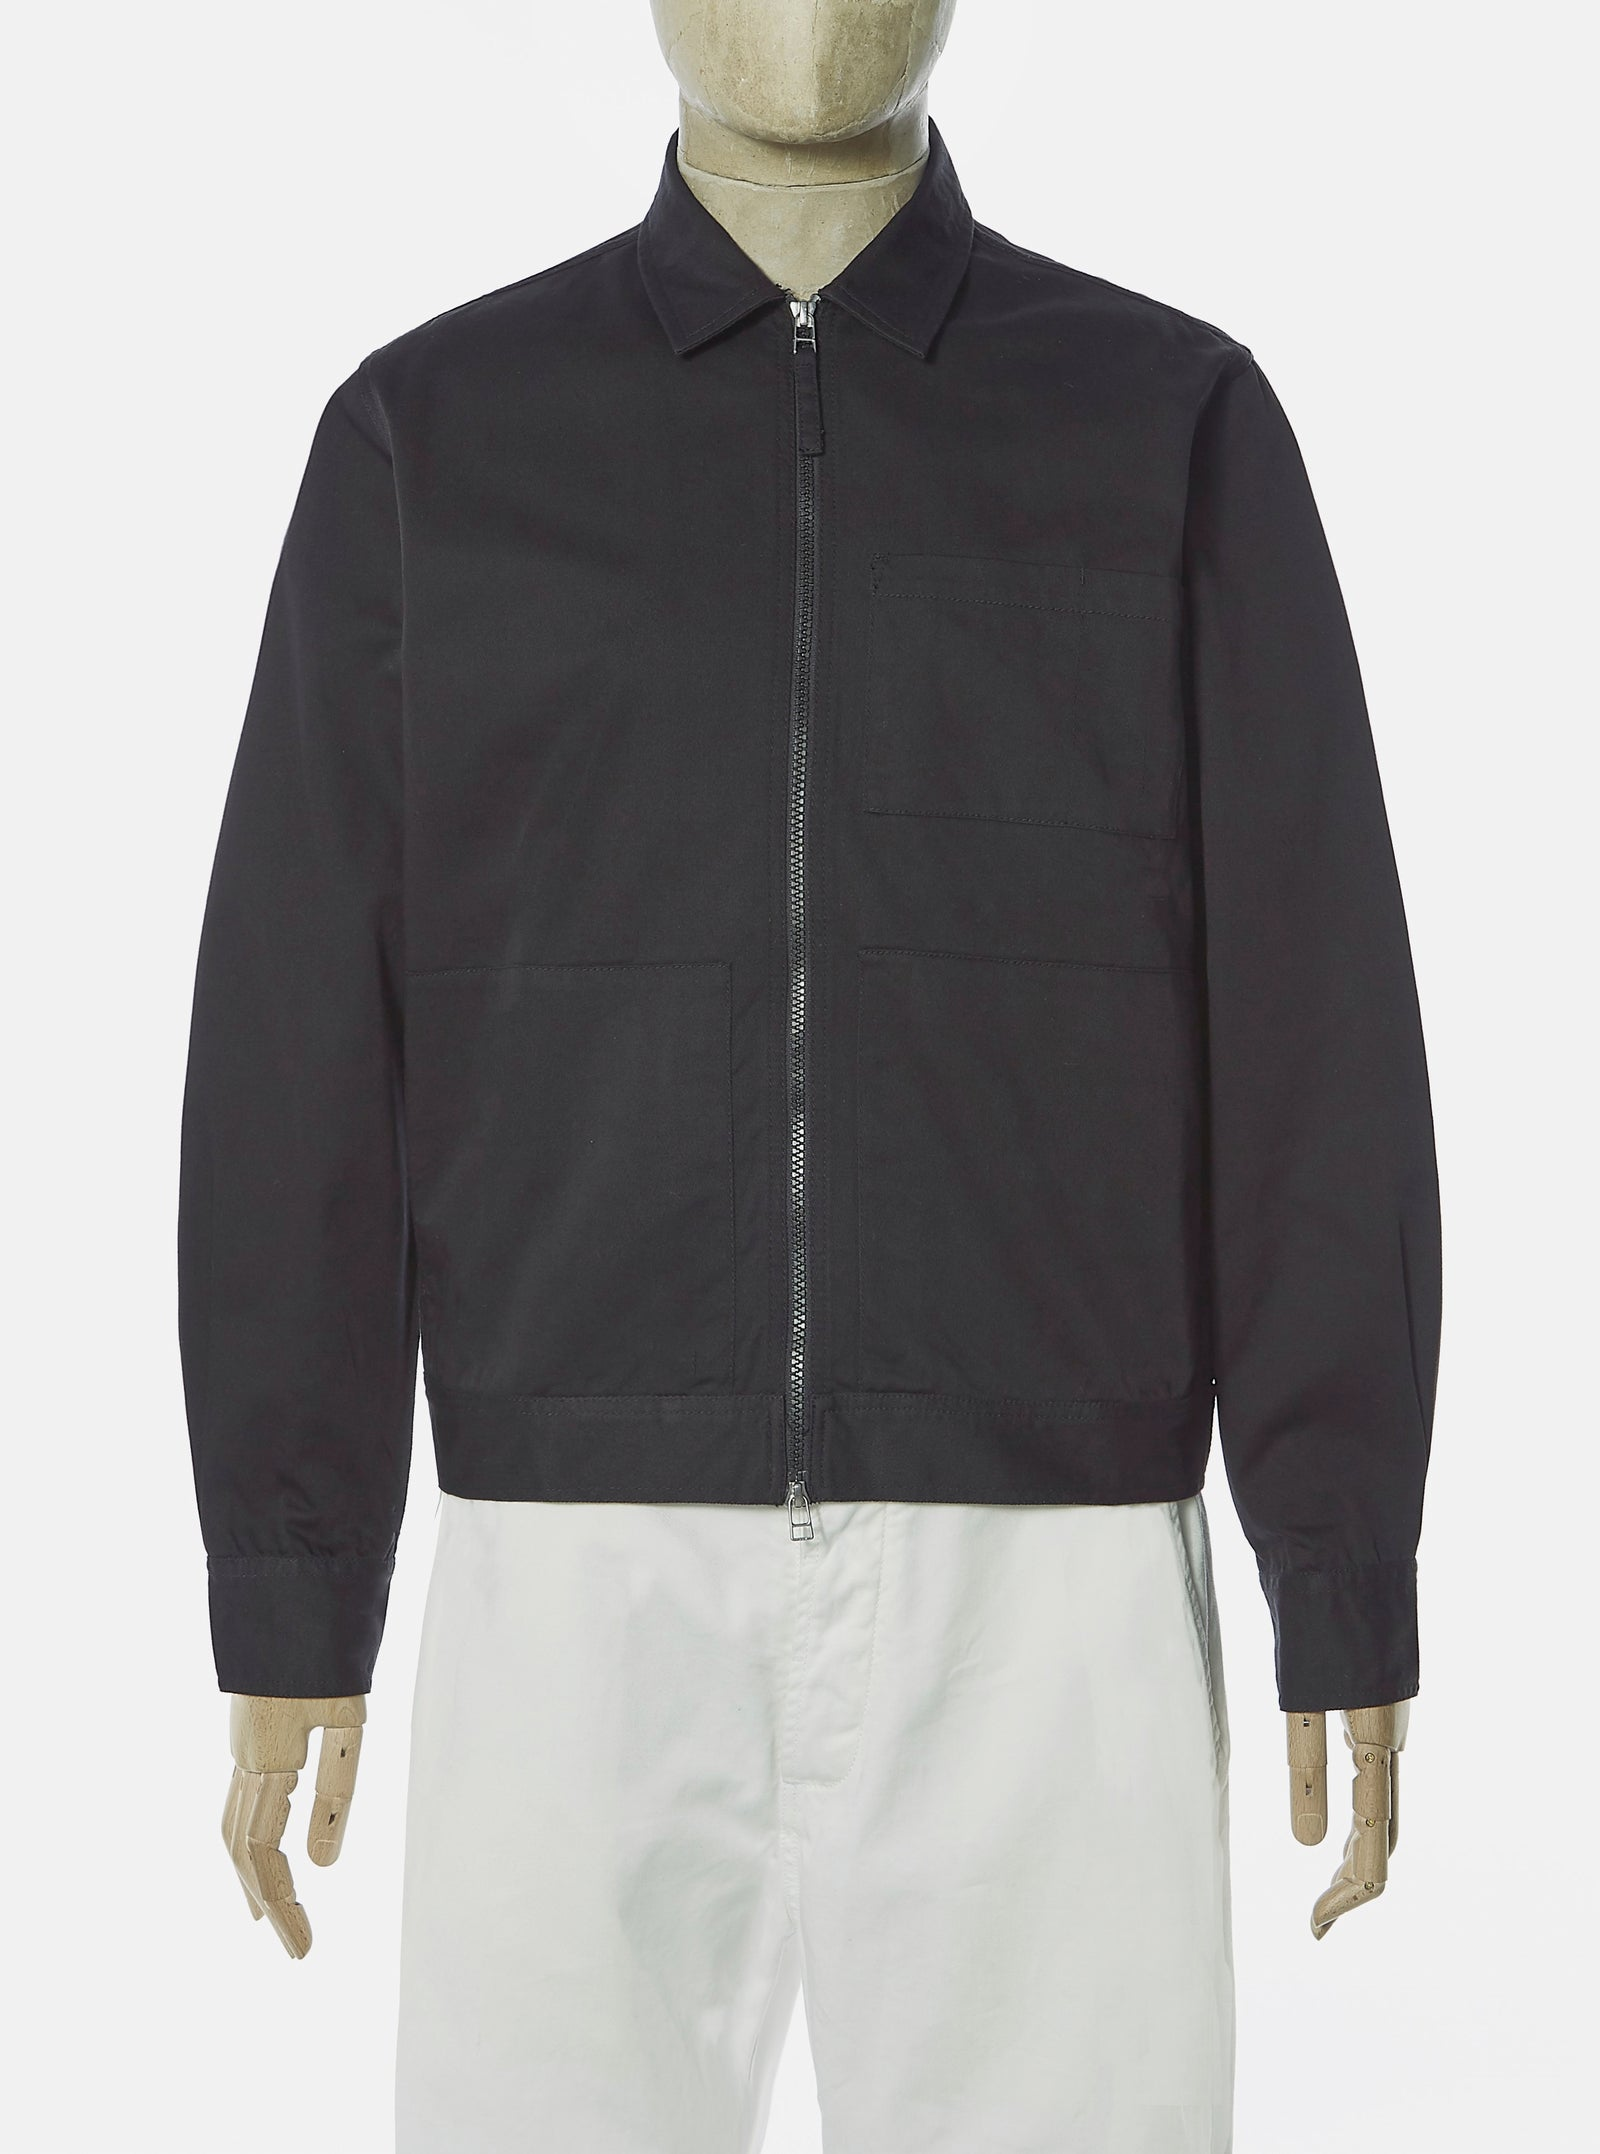 Universal Works Zip Uniform Jacket in Black Twill